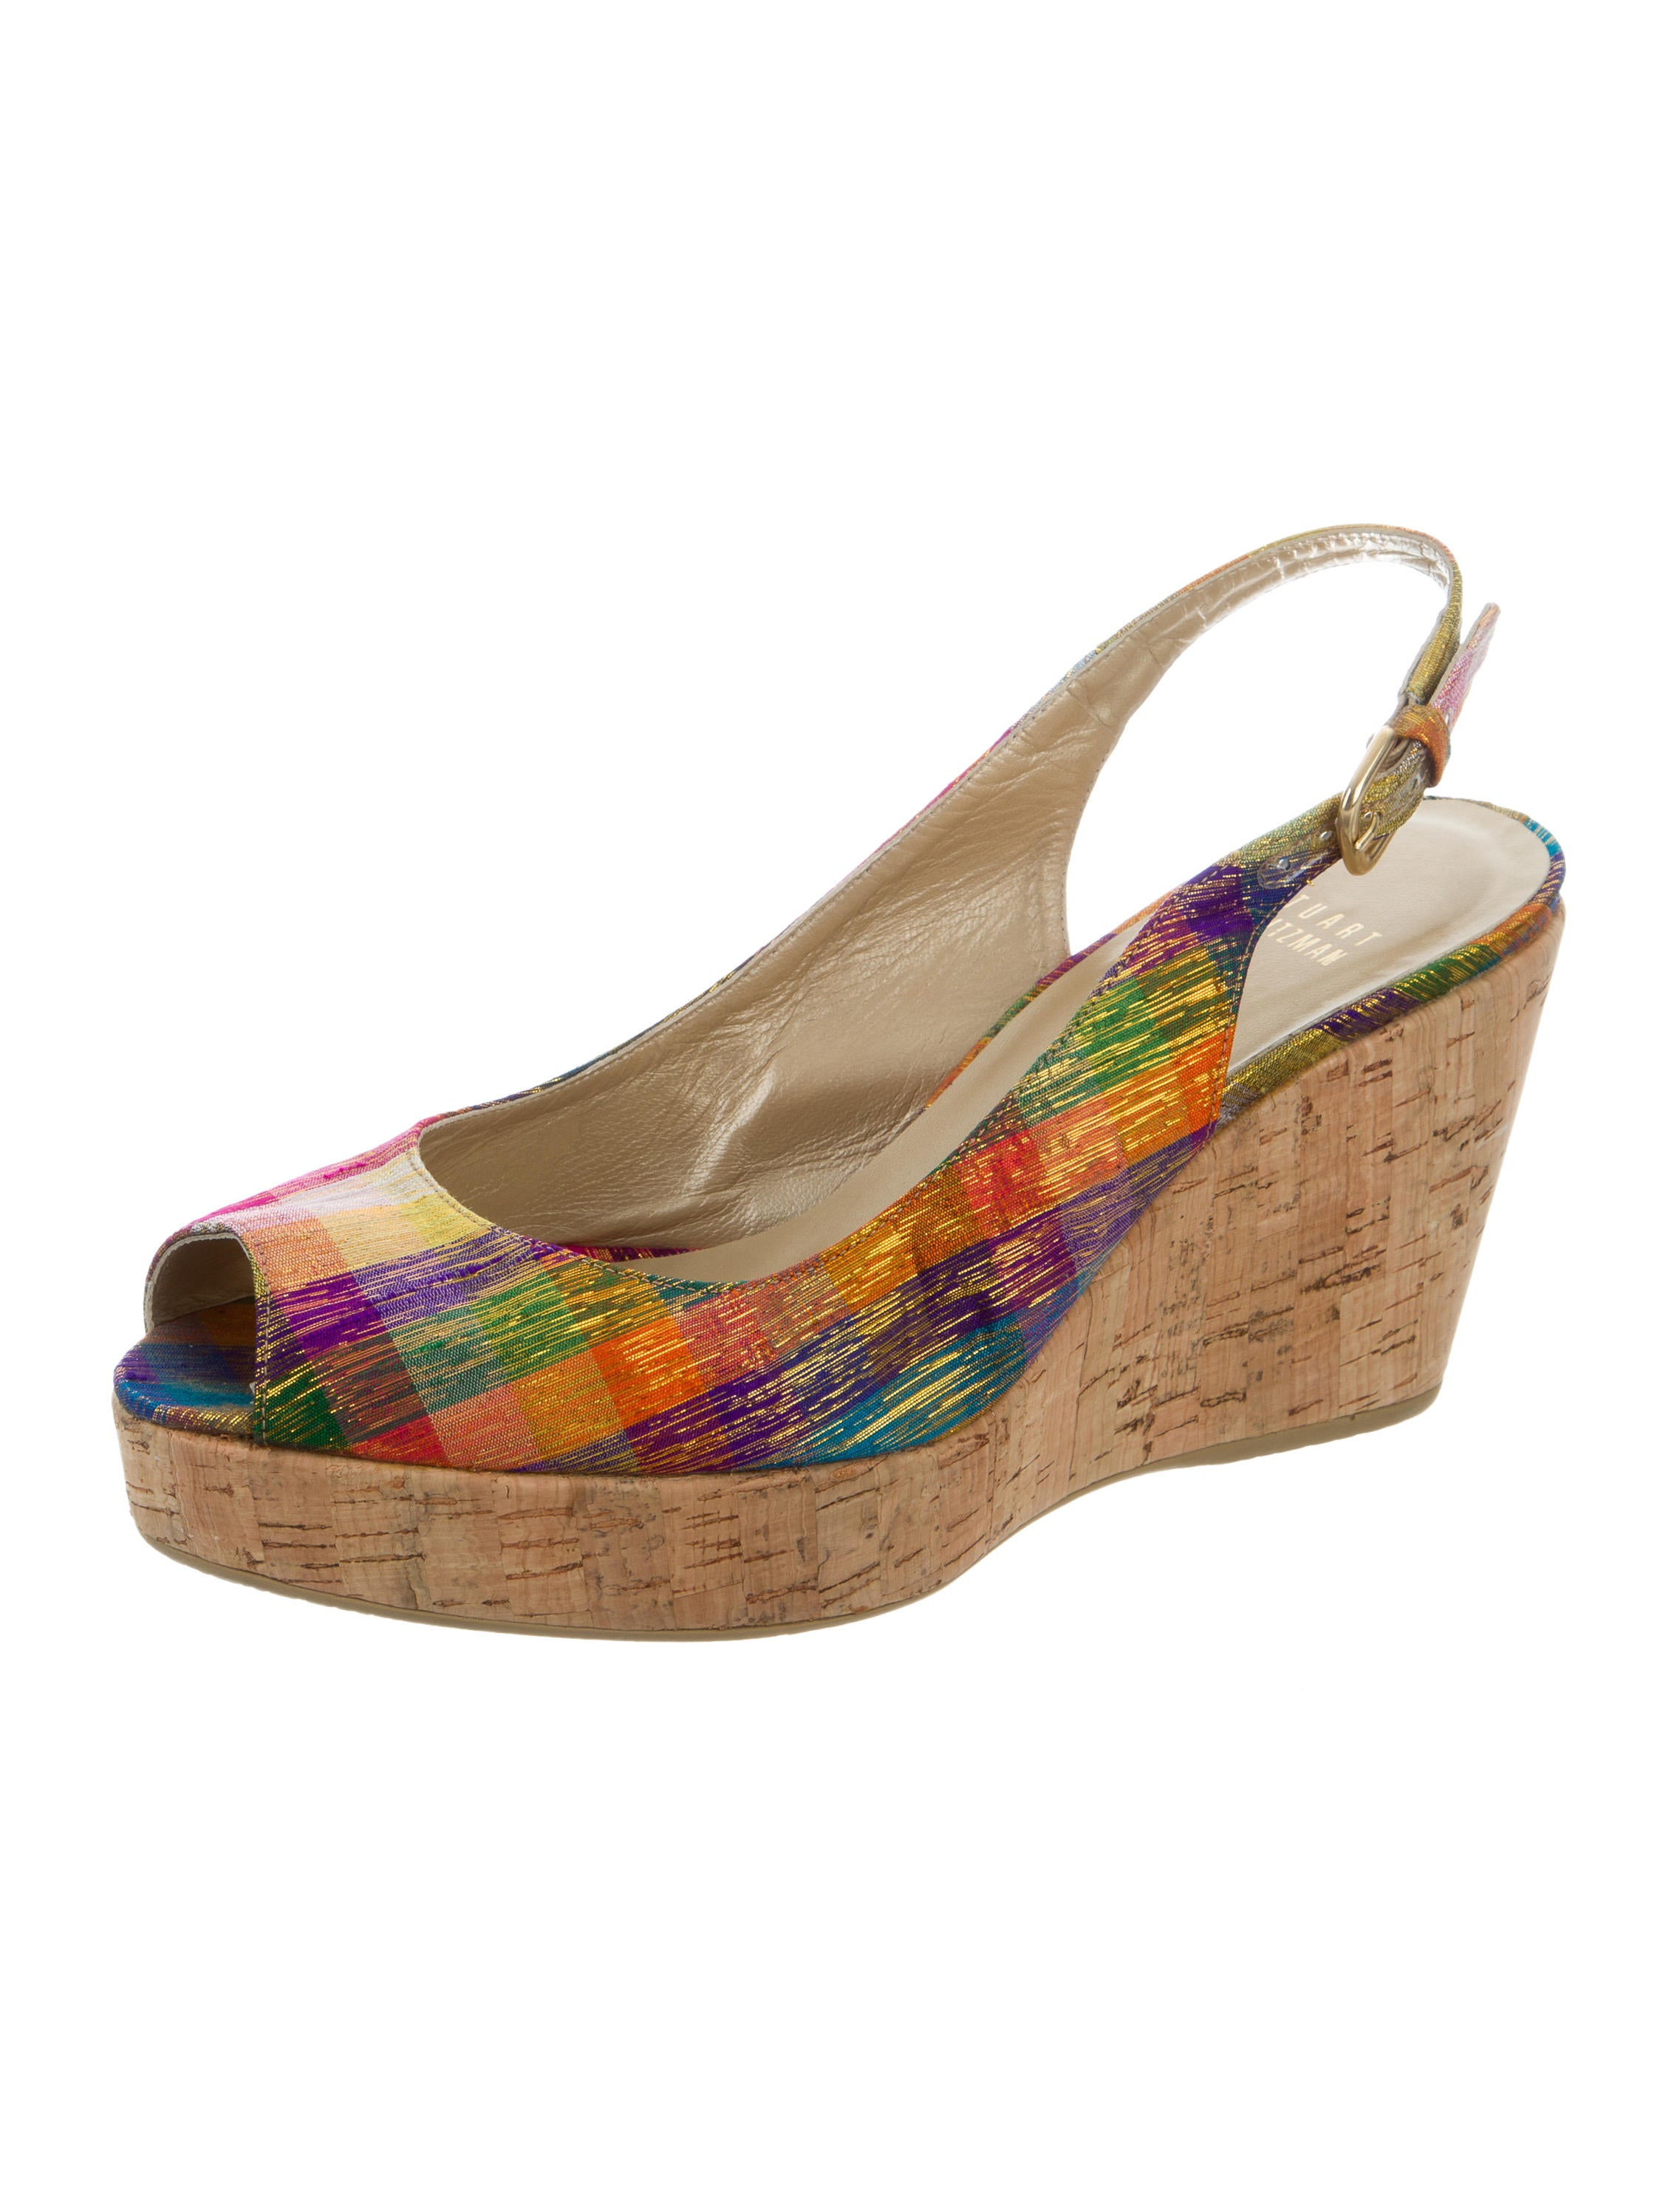 stuart weitzman canvas wedge sandals shoes wsu33751